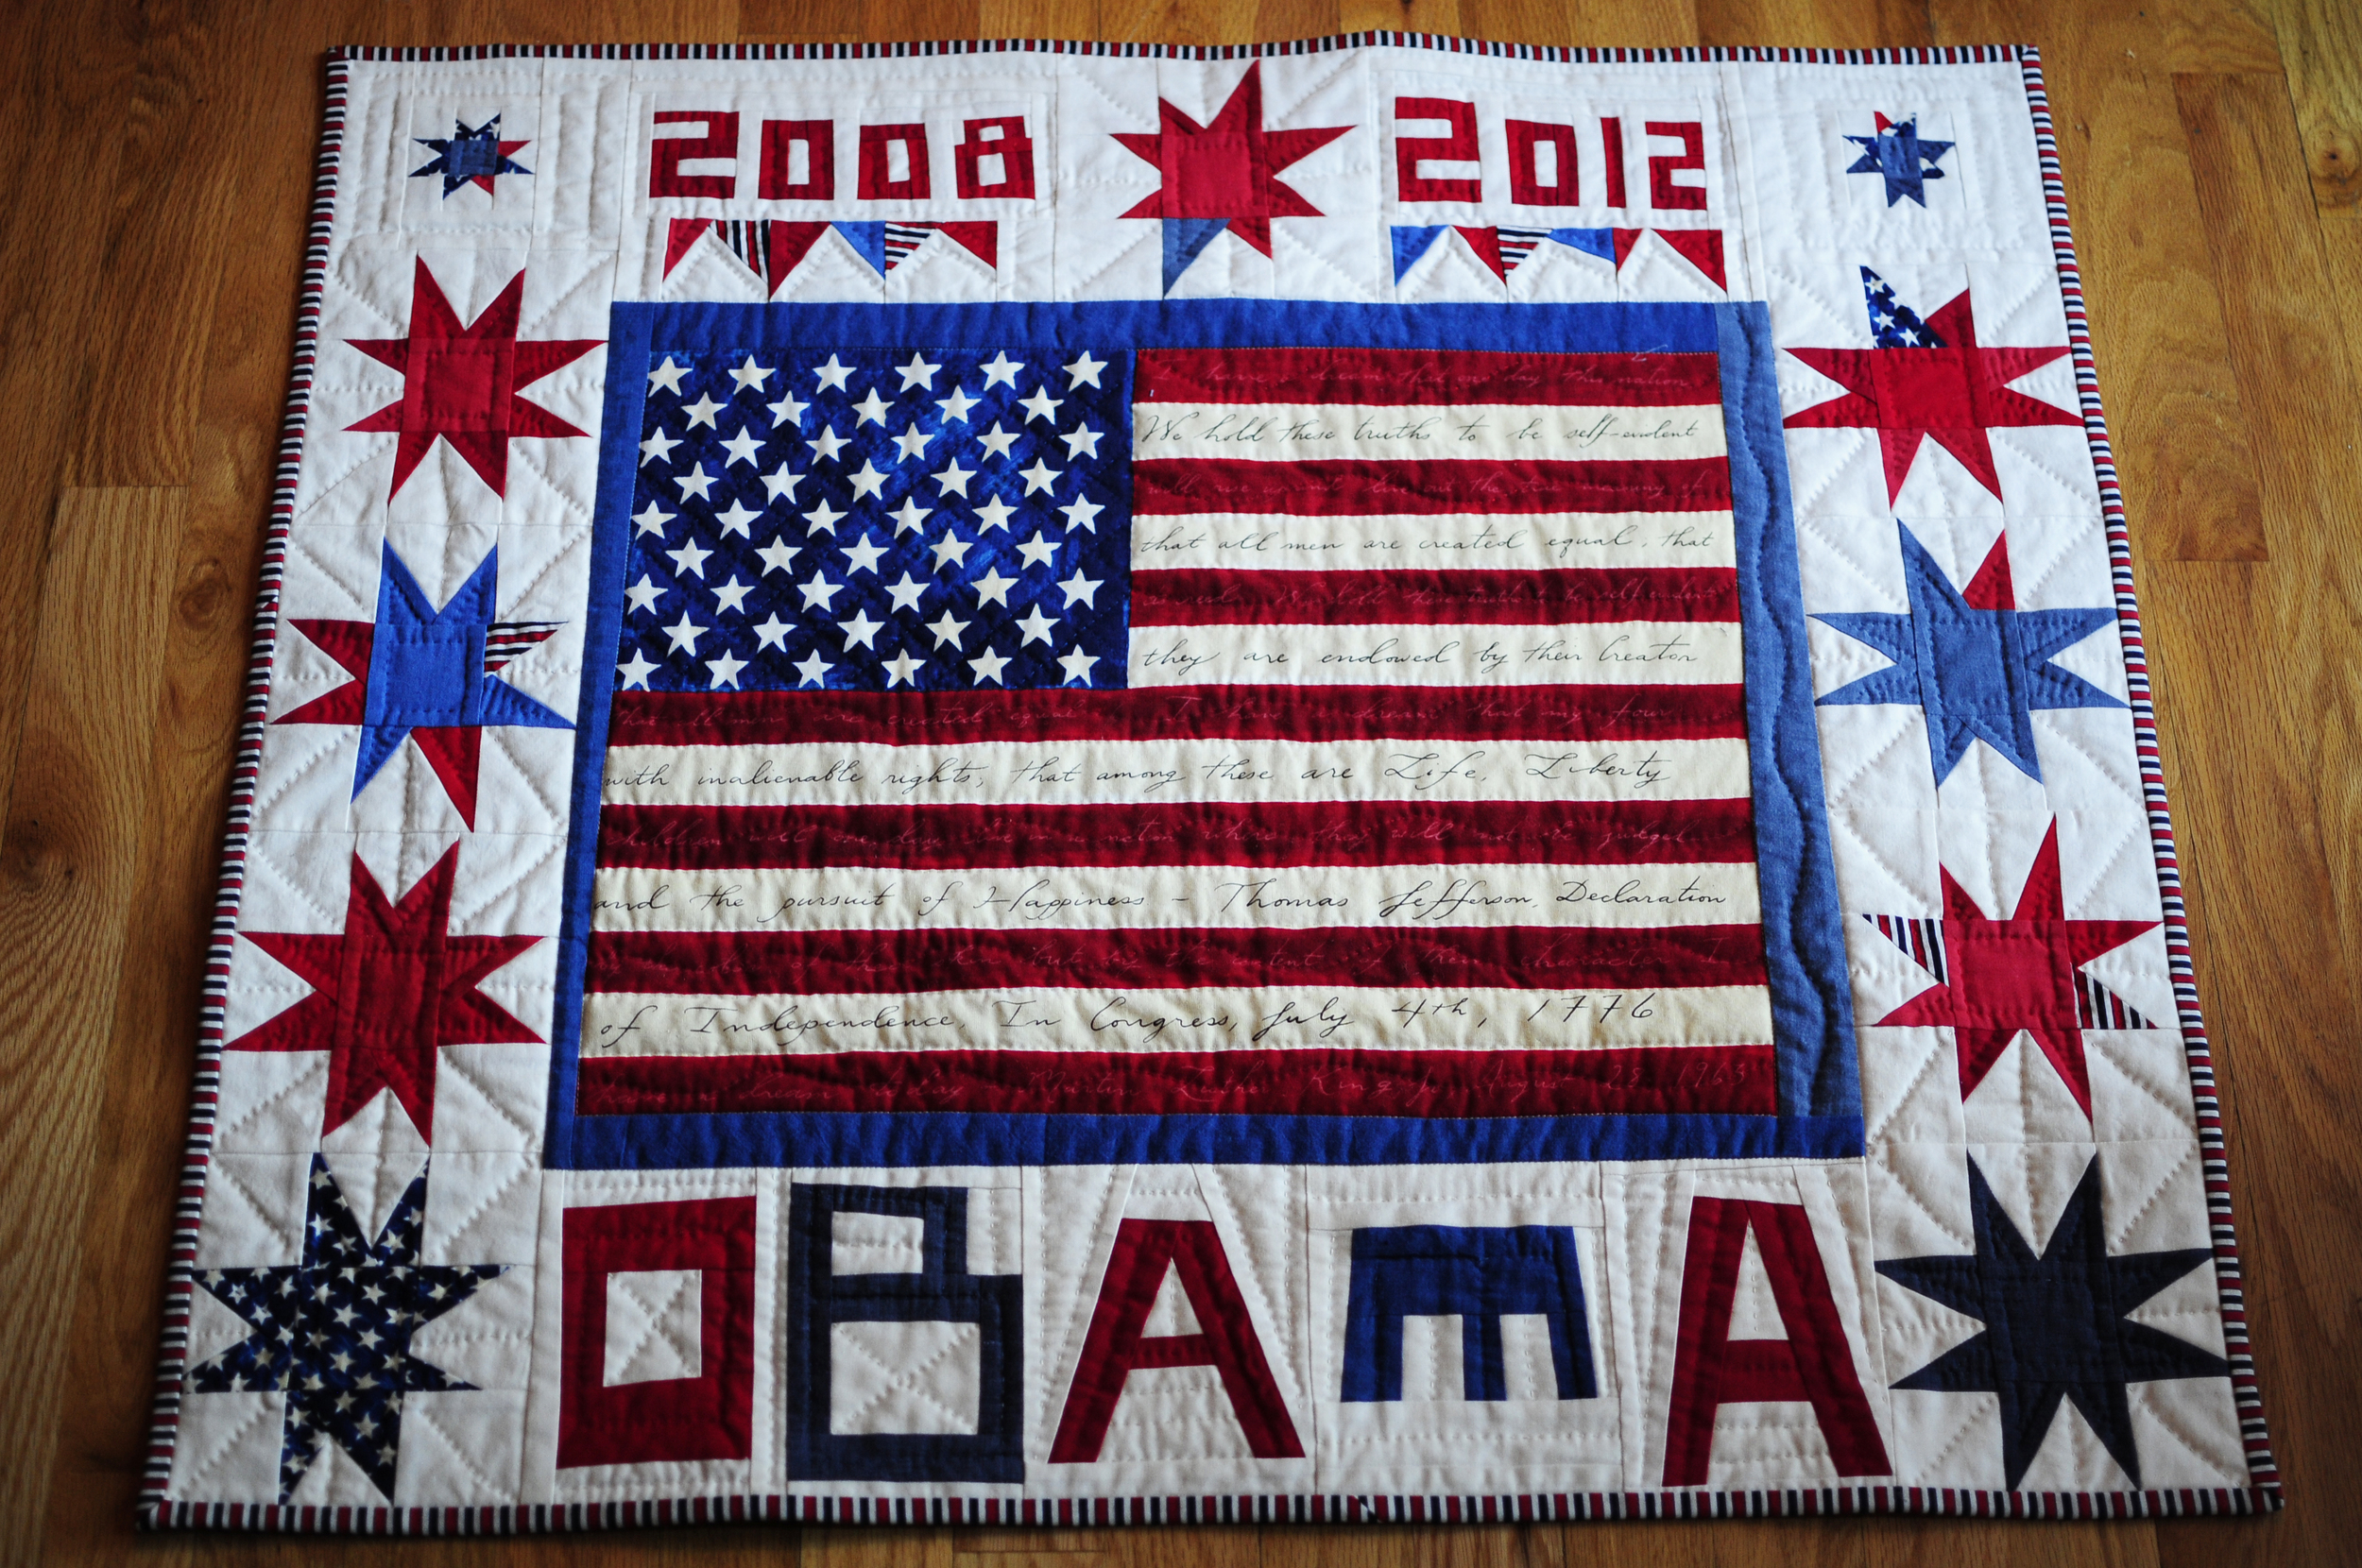 Obama Quilt on Inauguration Day